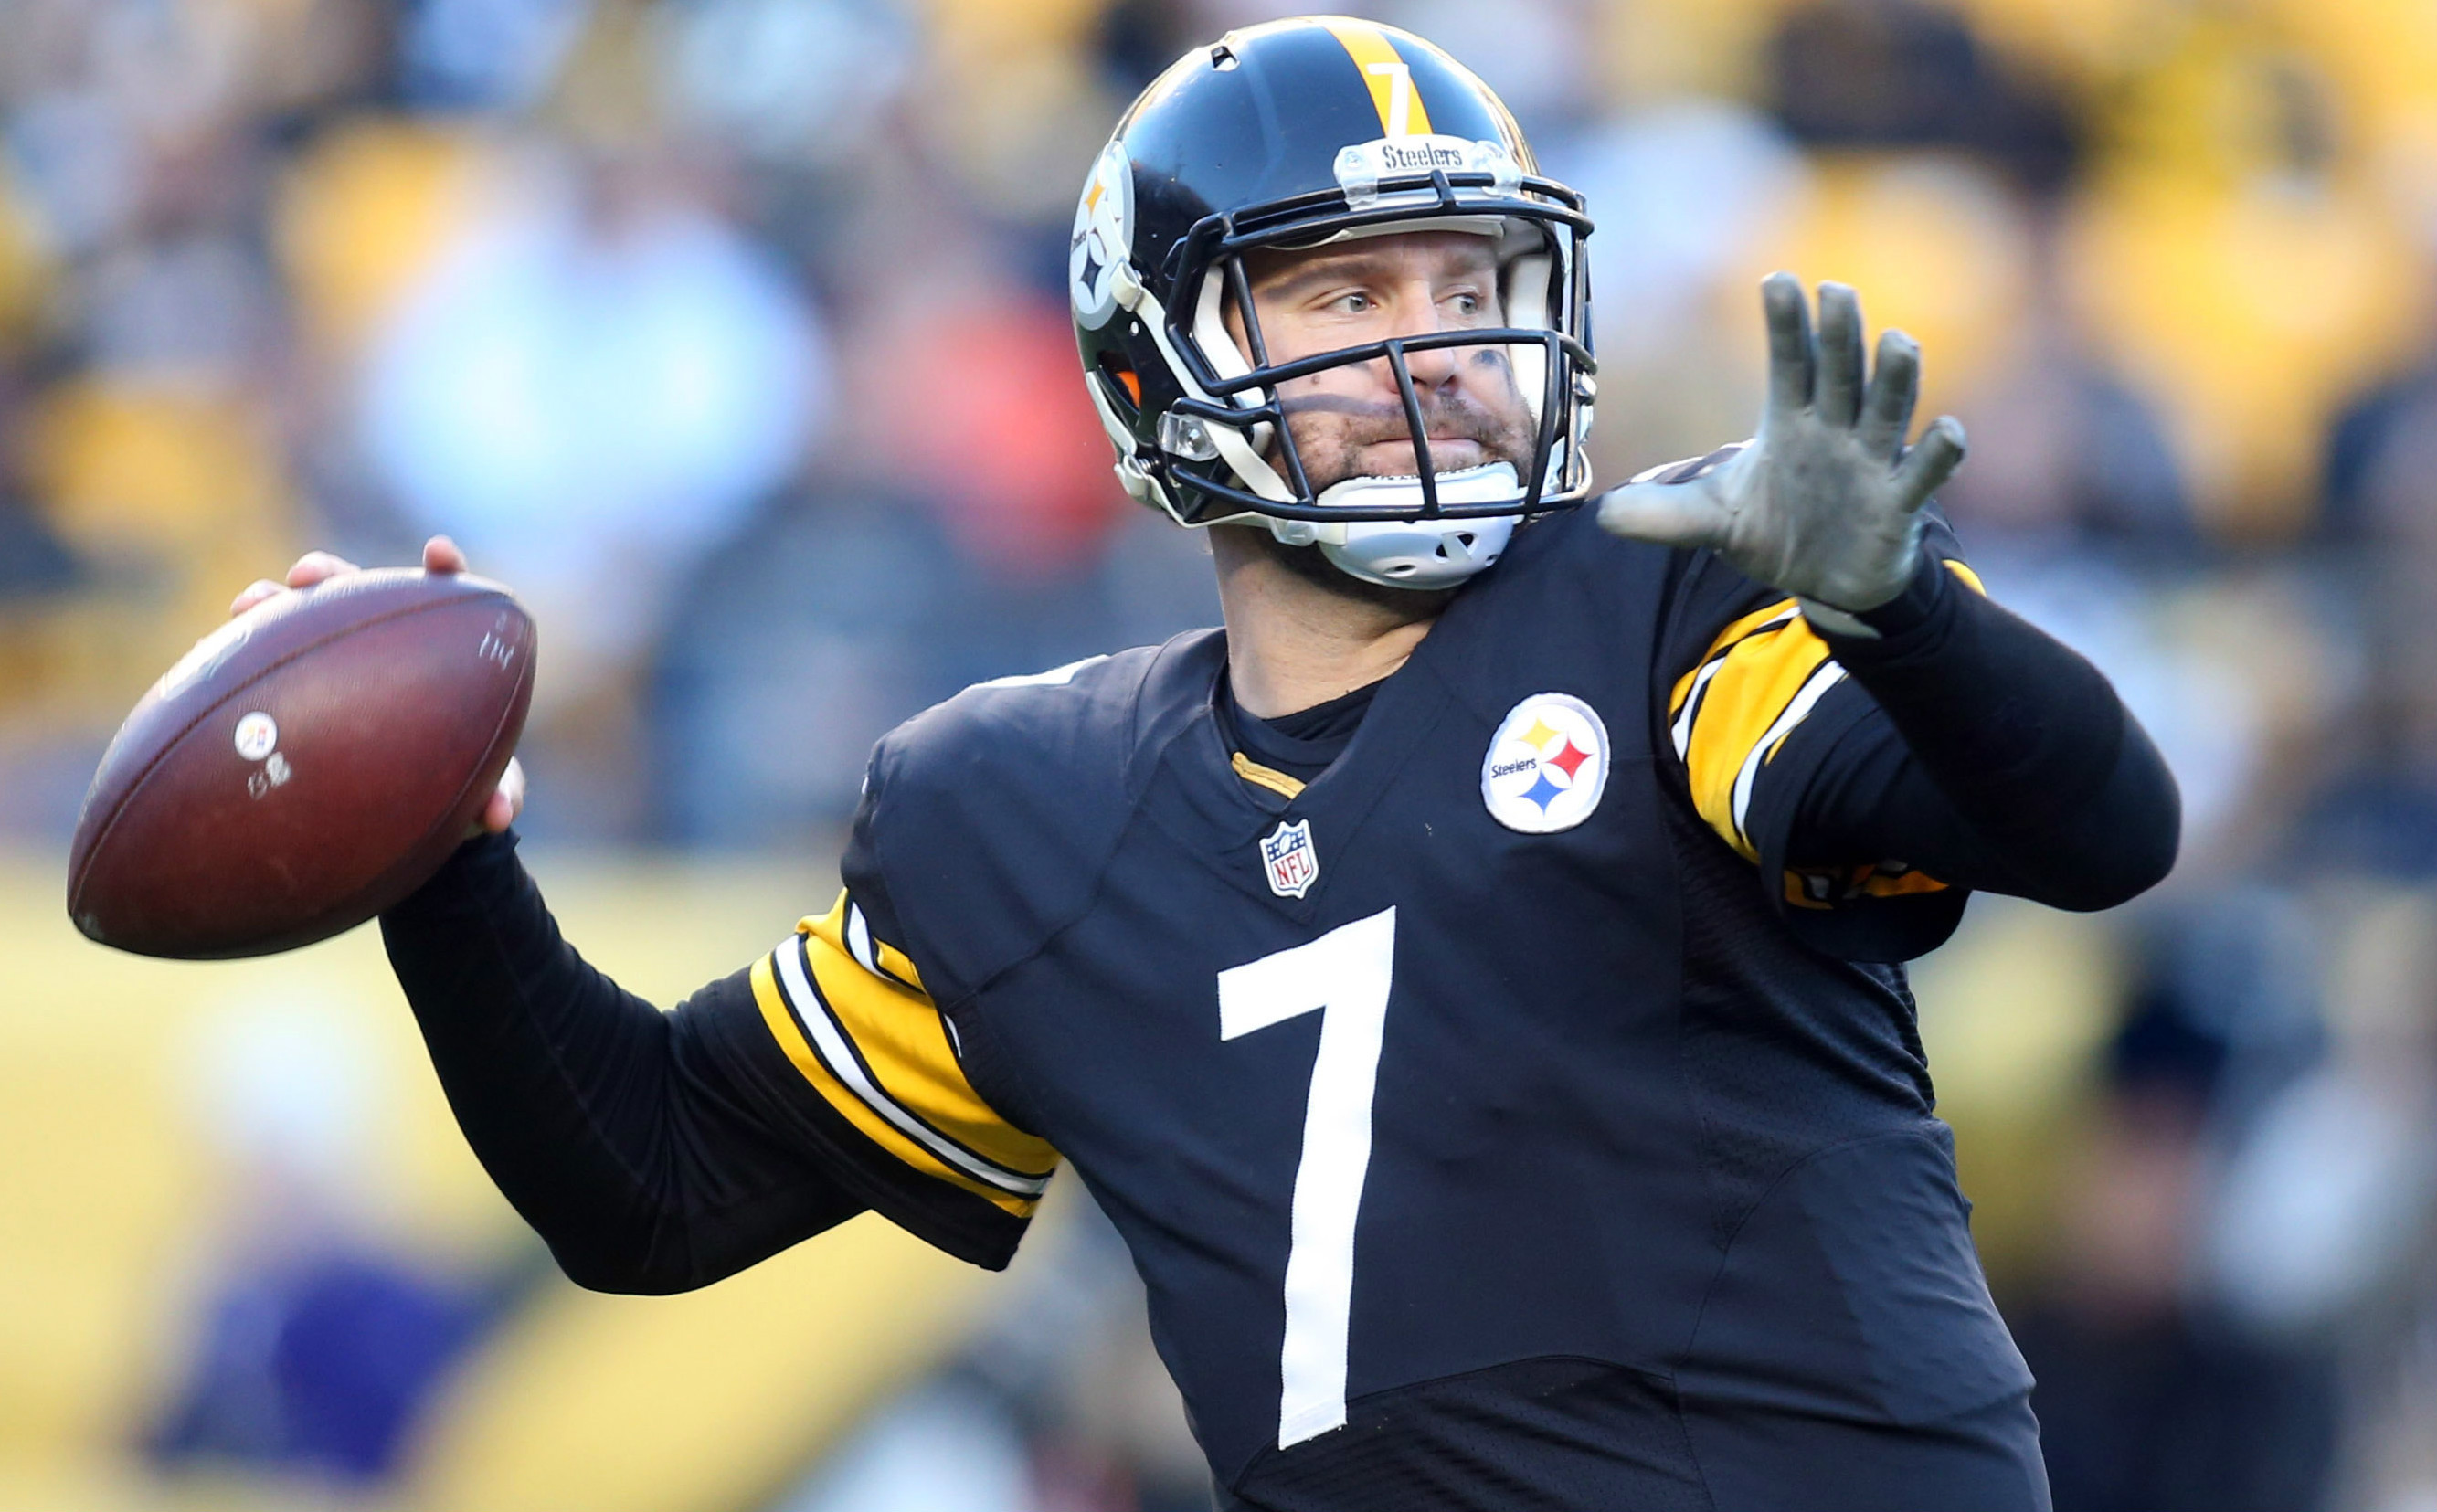 Cowboys Headlines - Ben Roethlisberger Knee Surgery; Could Miss Cowboys Game